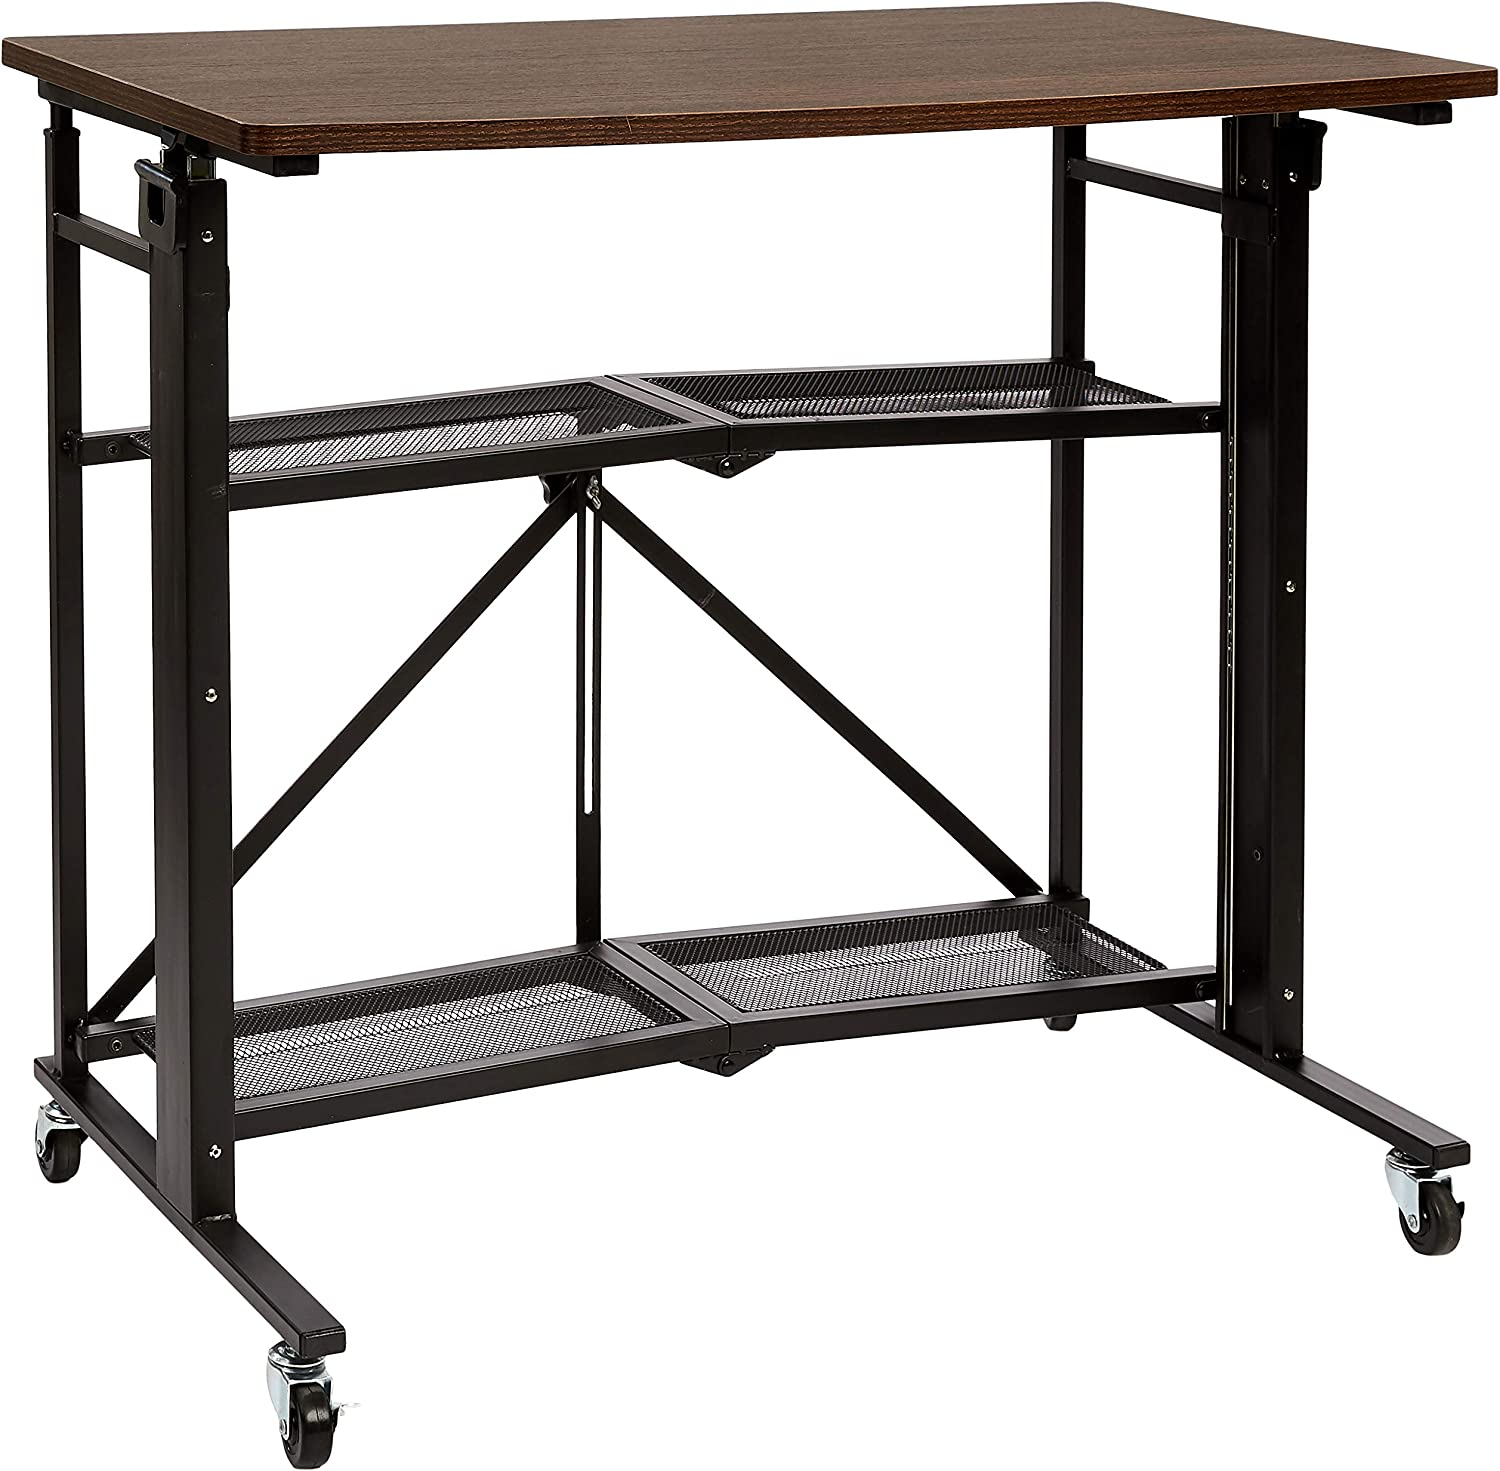 Amazon.com: AmazonBasics Foldable Standing Computer Desk with ...